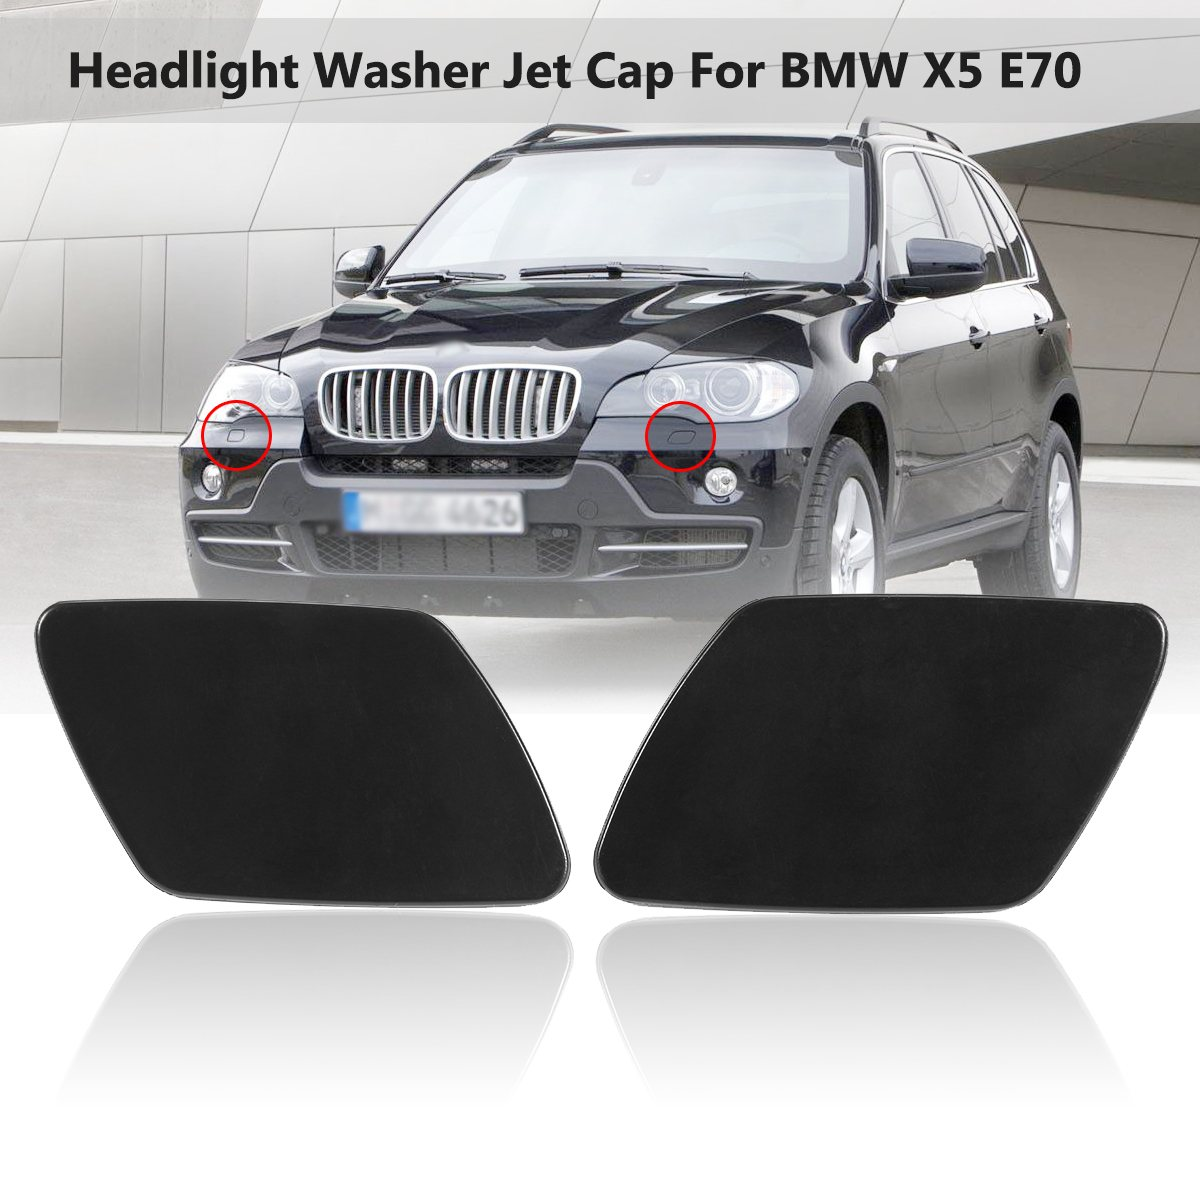 Car Front Left & Right Headlight Washer Jet Spray Nozzle Cap Cover For BMW X5 E70 51657199141 51657199142